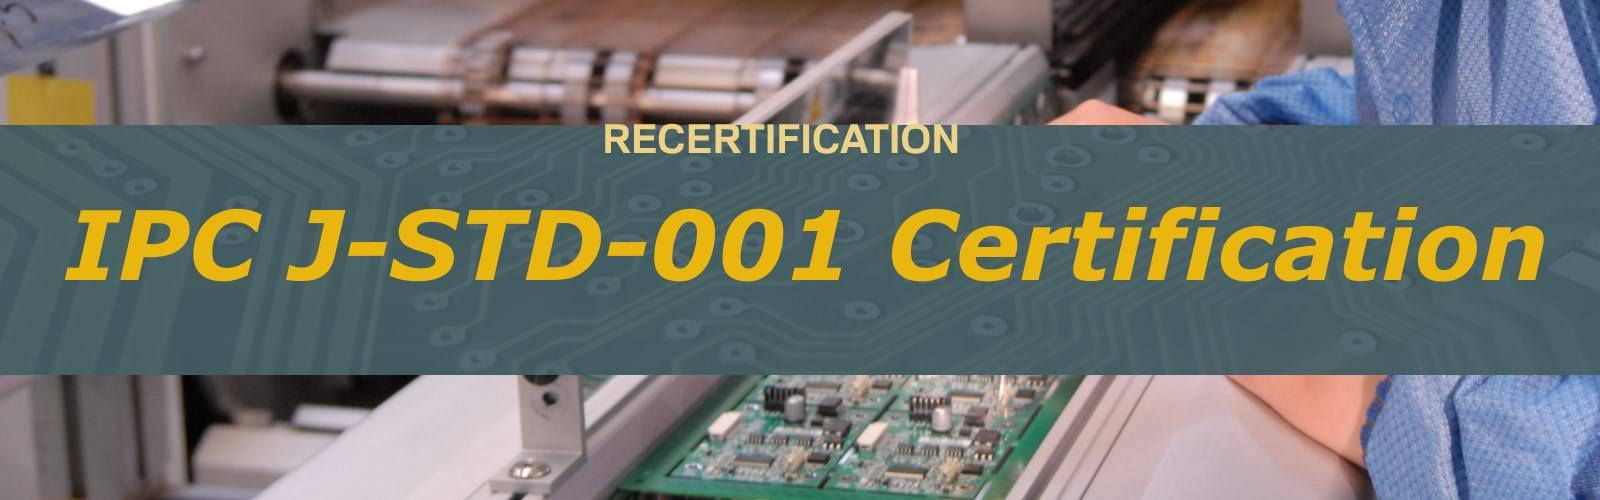 RECERTIFICATION IPC J-STD-001 CERTIFIED IPC SPECIALIST (CIS)